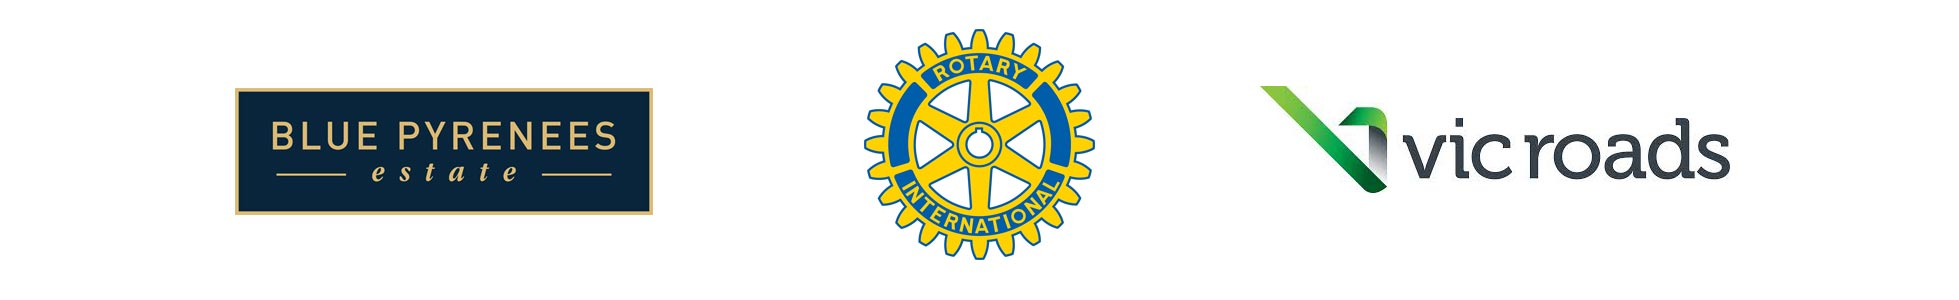 Blue Pyrenees | Rotary | Vicroads Event Sponsors